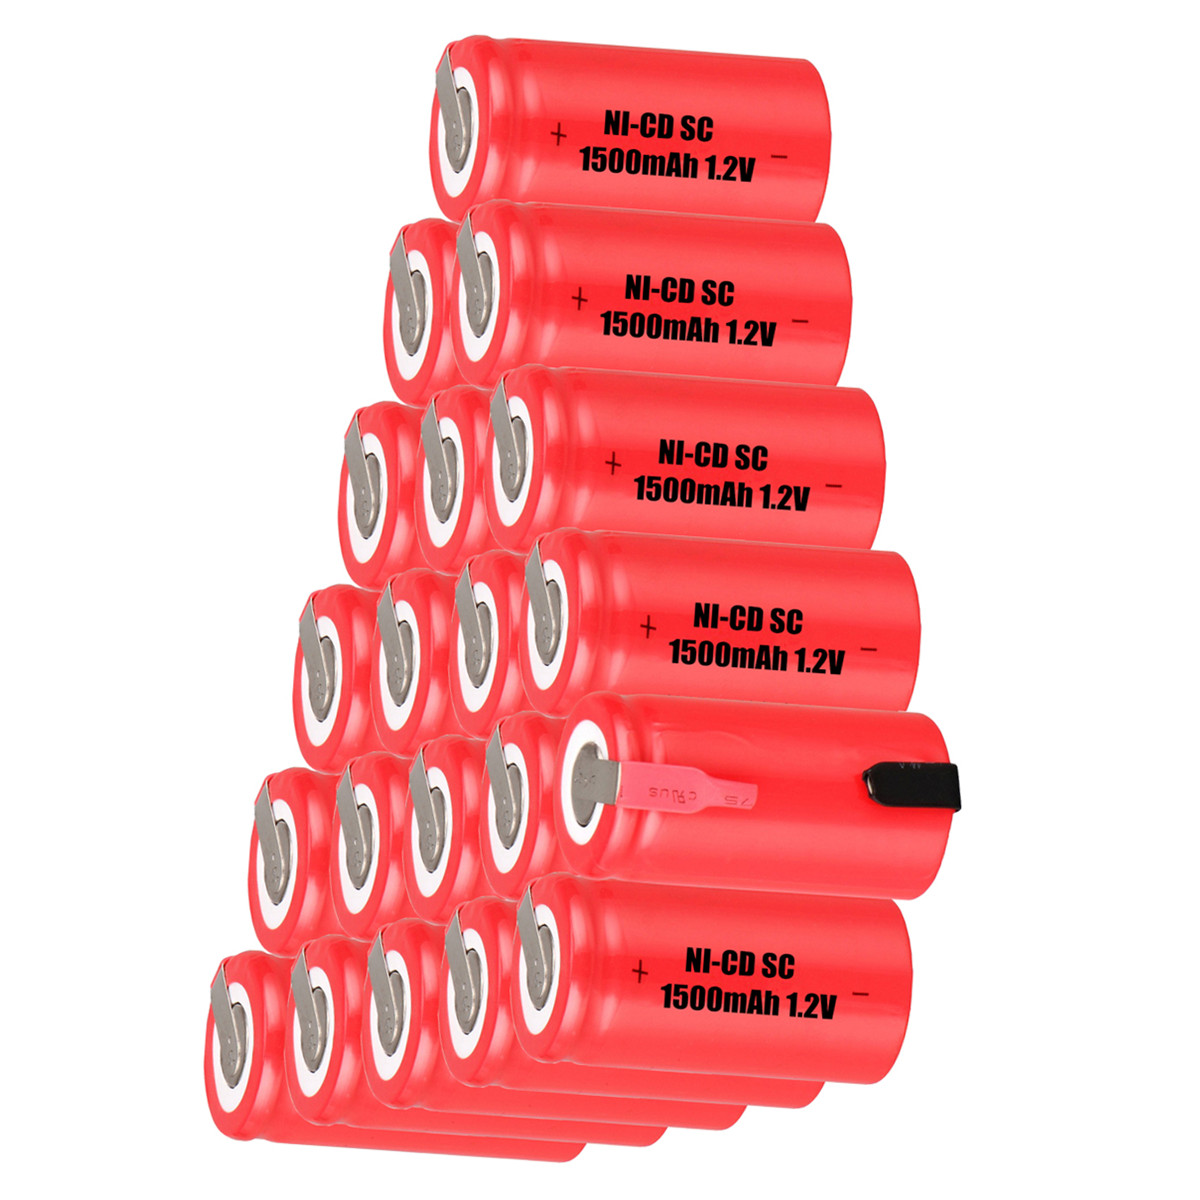 Lowest price 20 piece SC <font><b>battery</b></font> <font><b>1.2v</b></font> <font><b>batteries</b></font> rechargeable <font><b>1500mAh</b></font> <font><b>nicd</b></font> <font><b>battery</b></font> for power tools akkumulator image